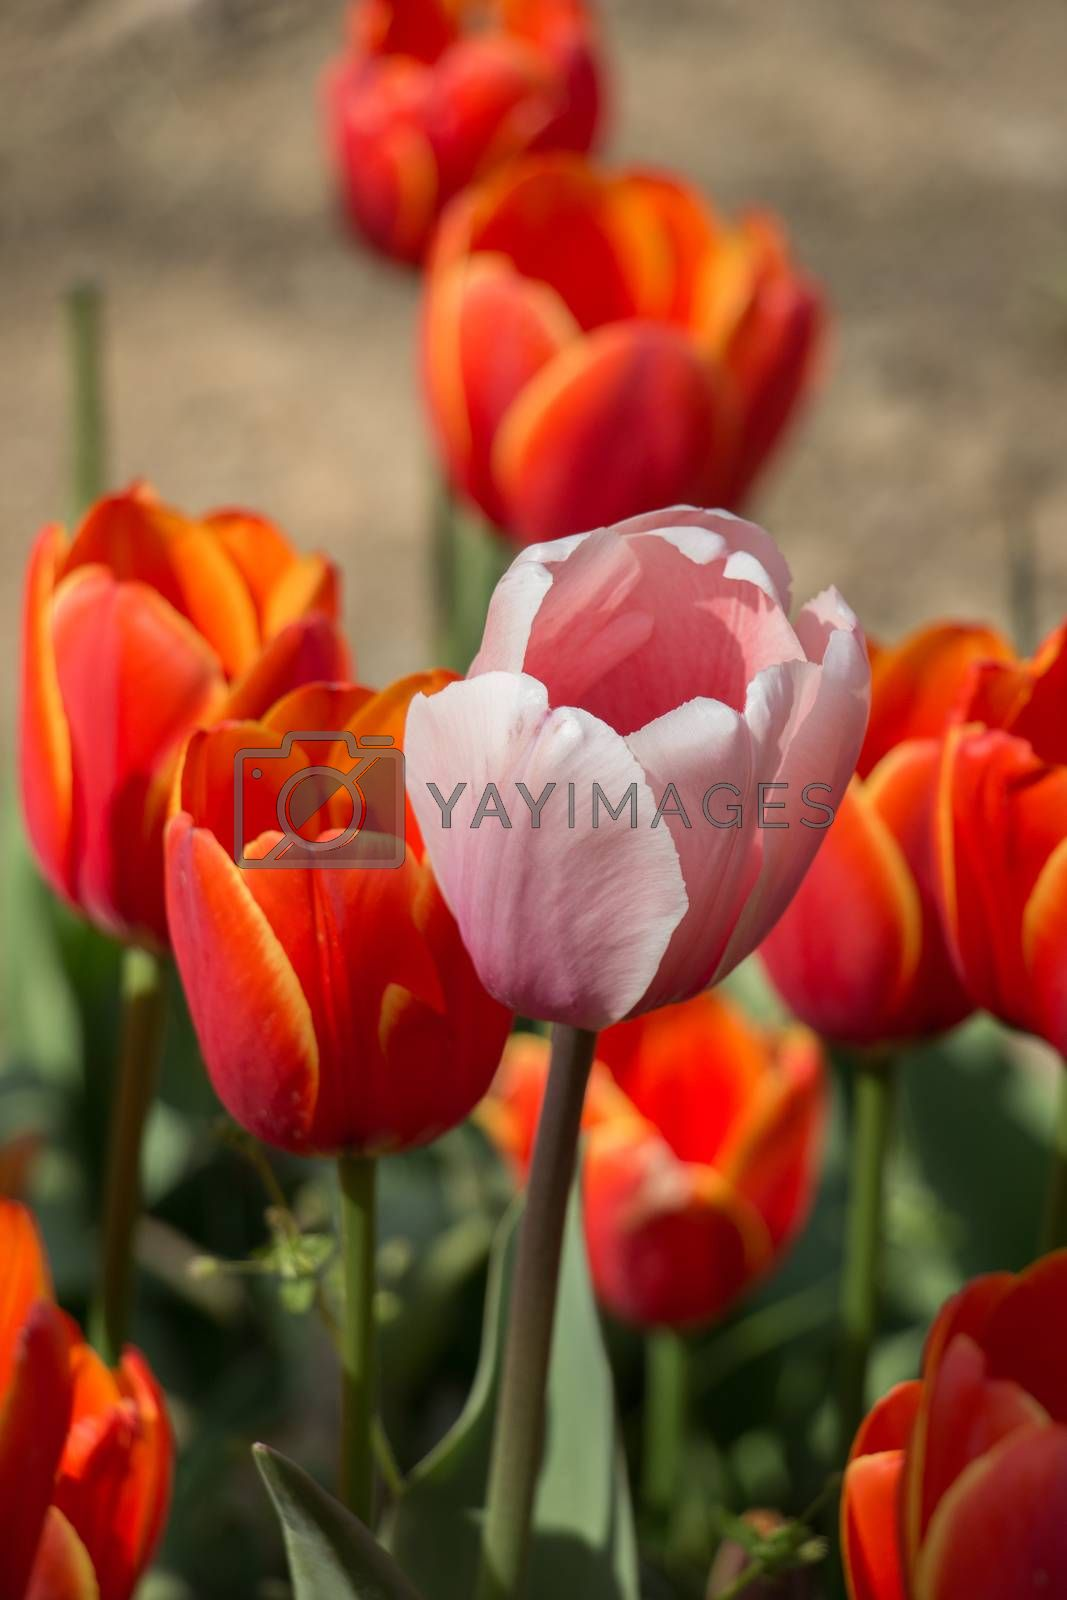 Tulips Blooming in Spring  by berkay